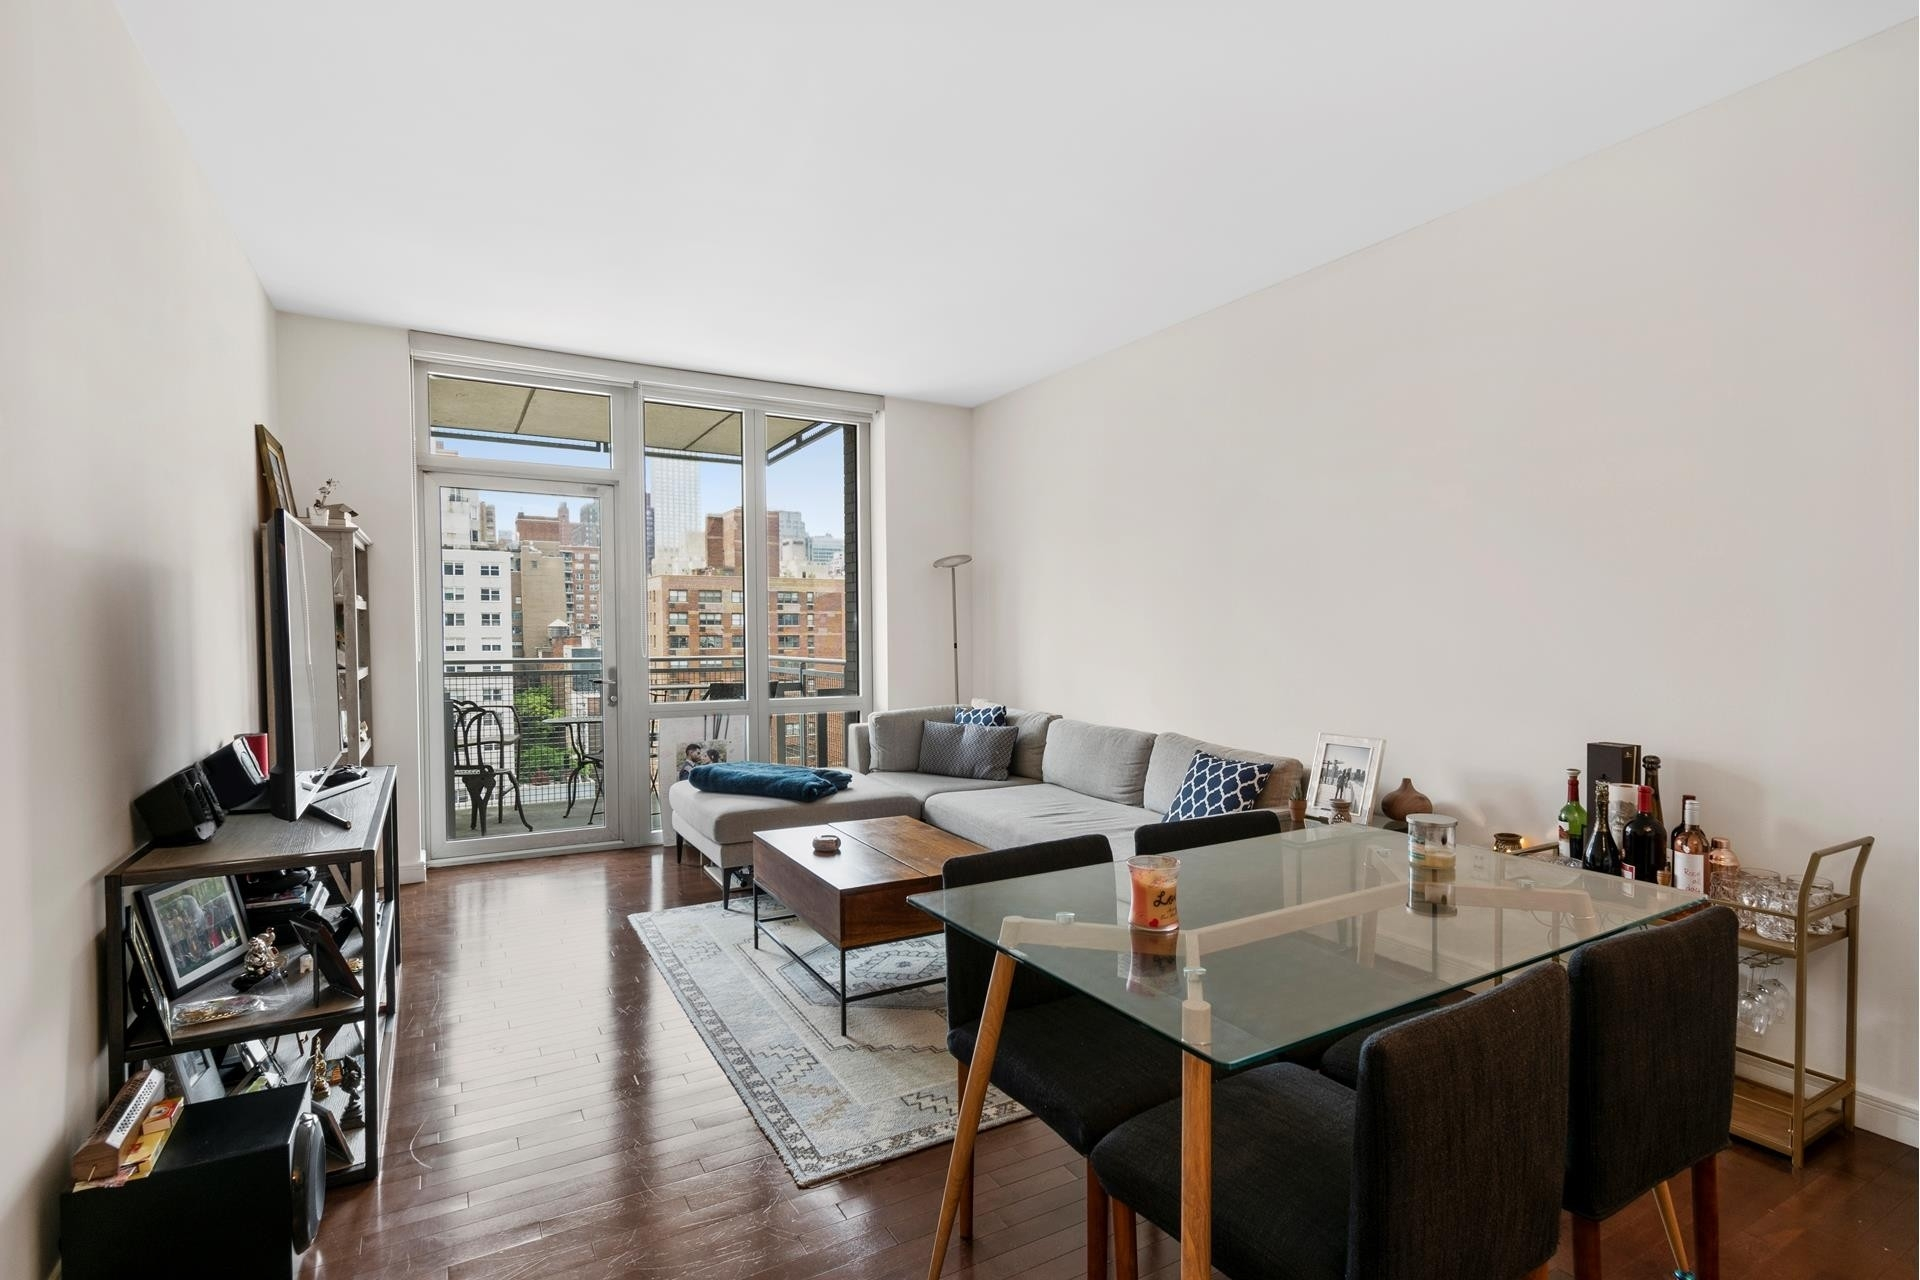 Condominium at The Charleston, 225 East 34th St, 14D Murray Hill, New York